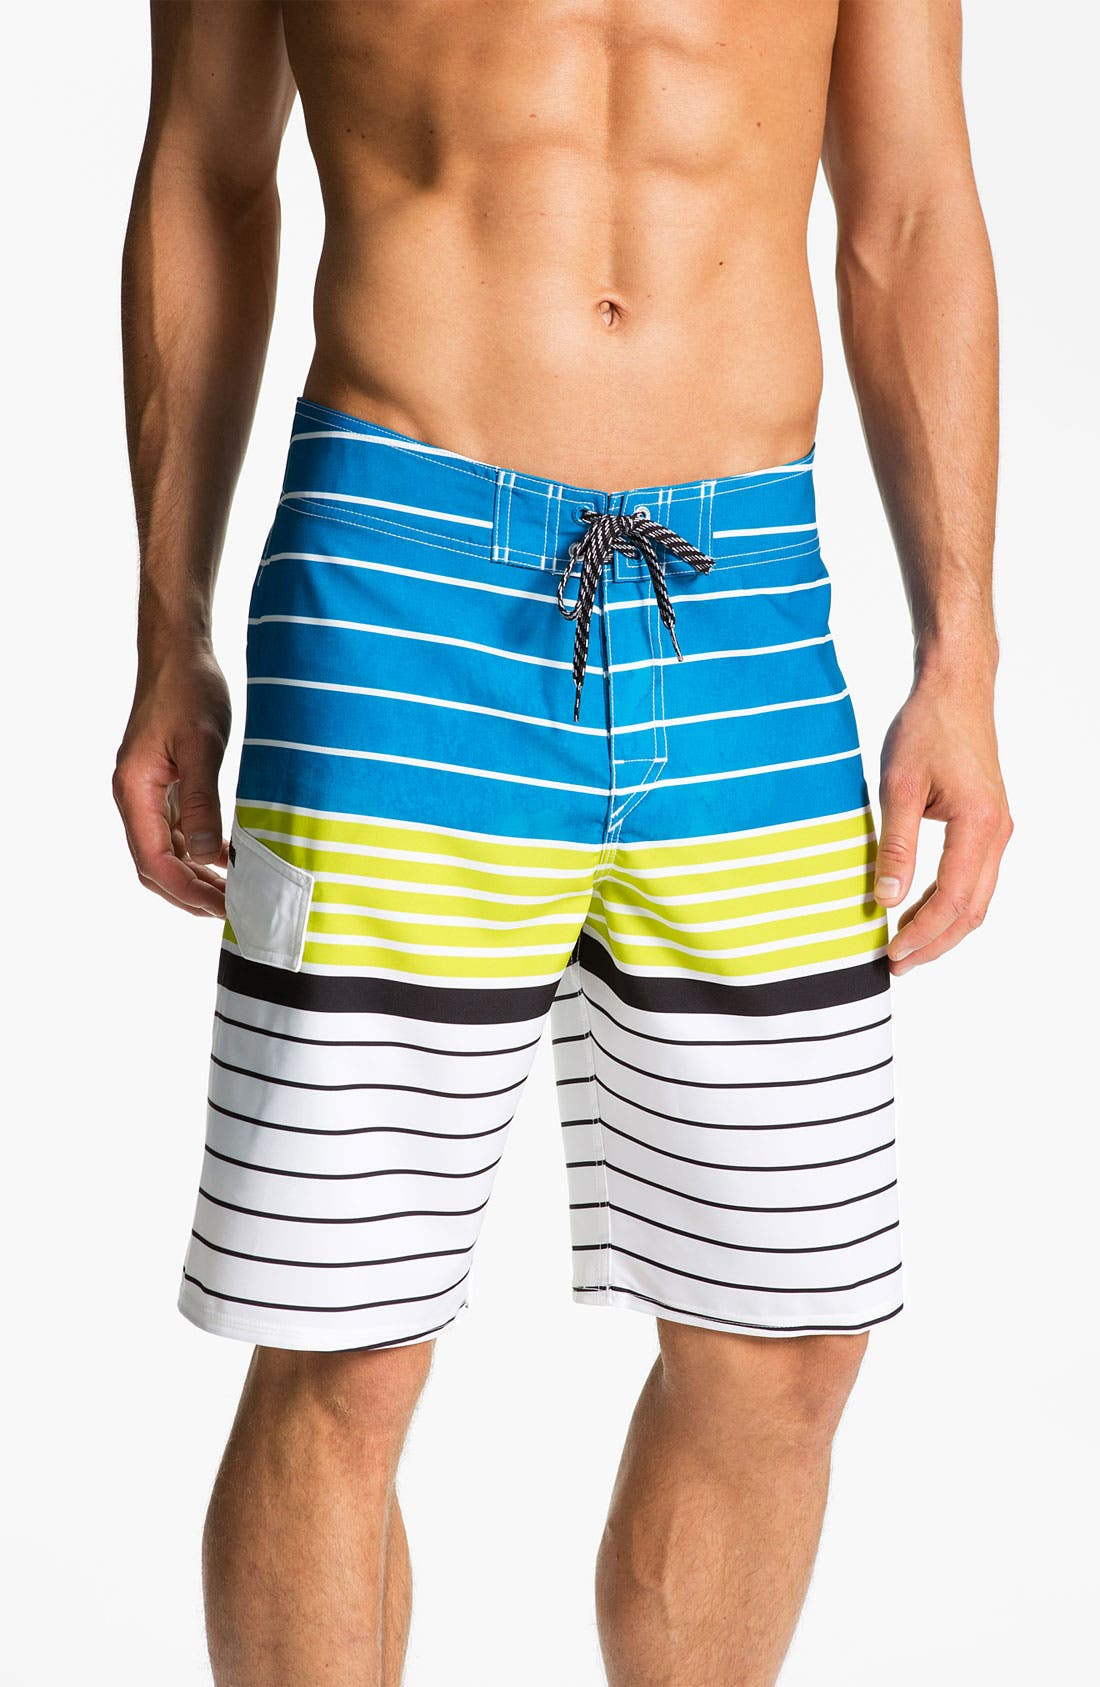 Alternate Image 1 Selected - Quiksilver 'Trolling' Board Shorts